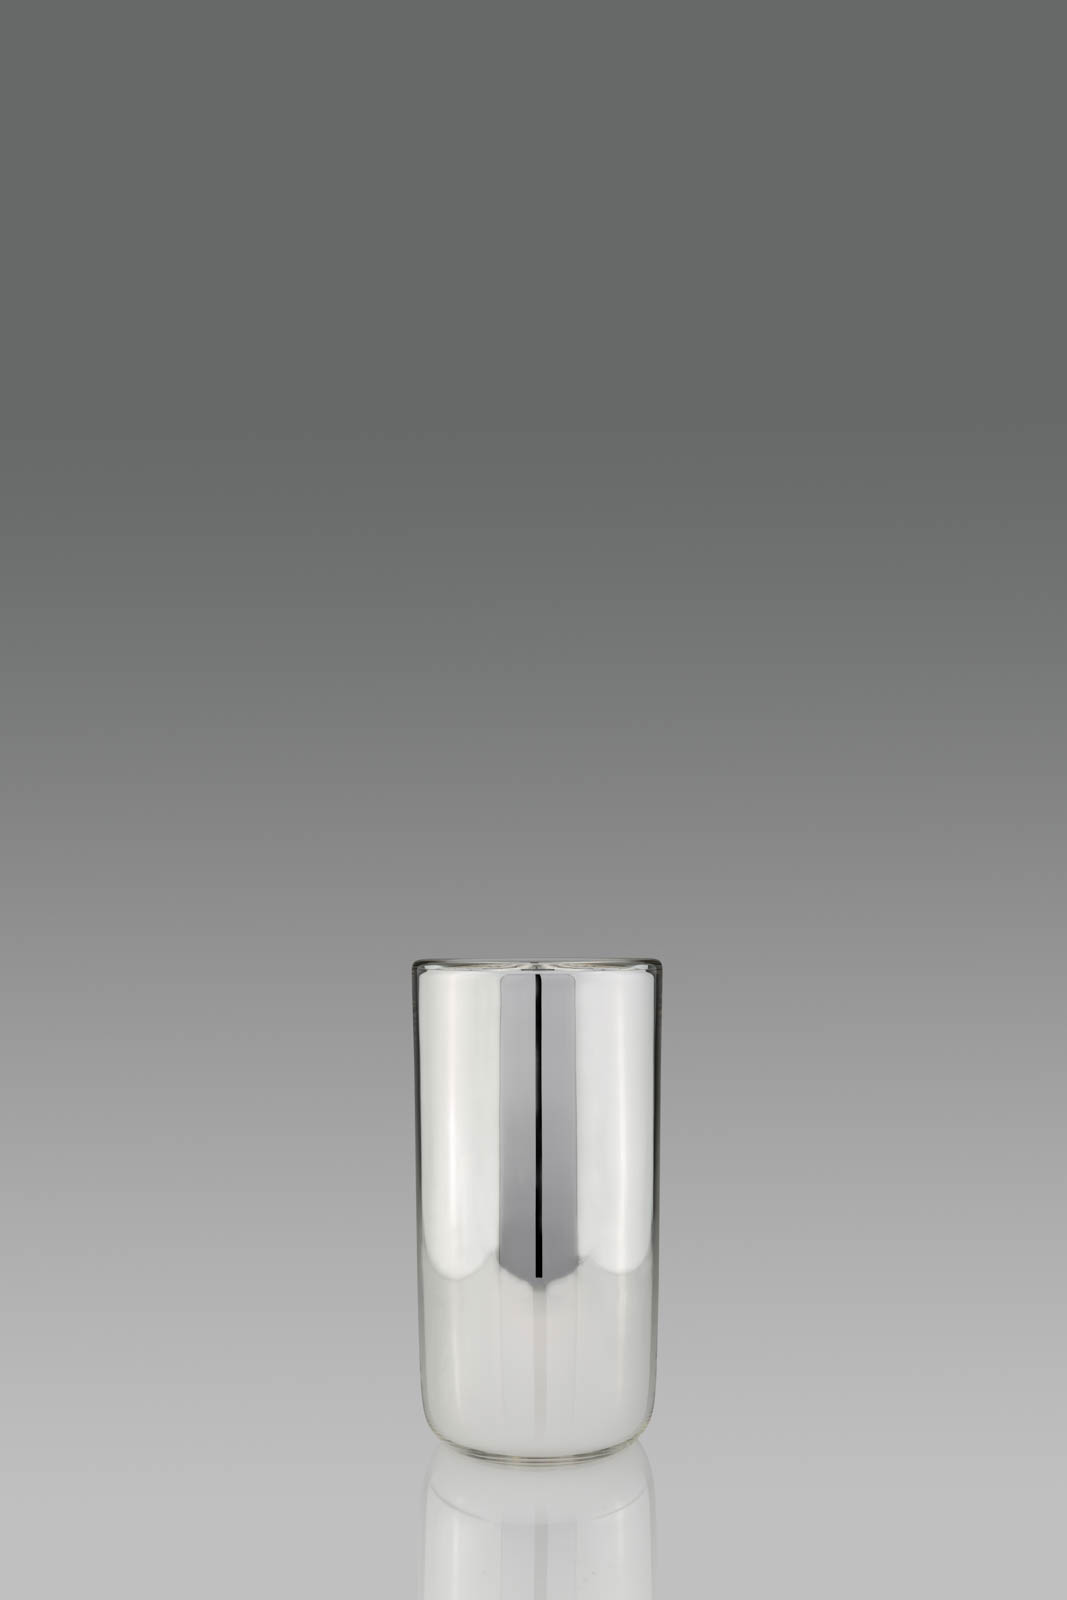 Silvered Glass Vase - Glass / Silver